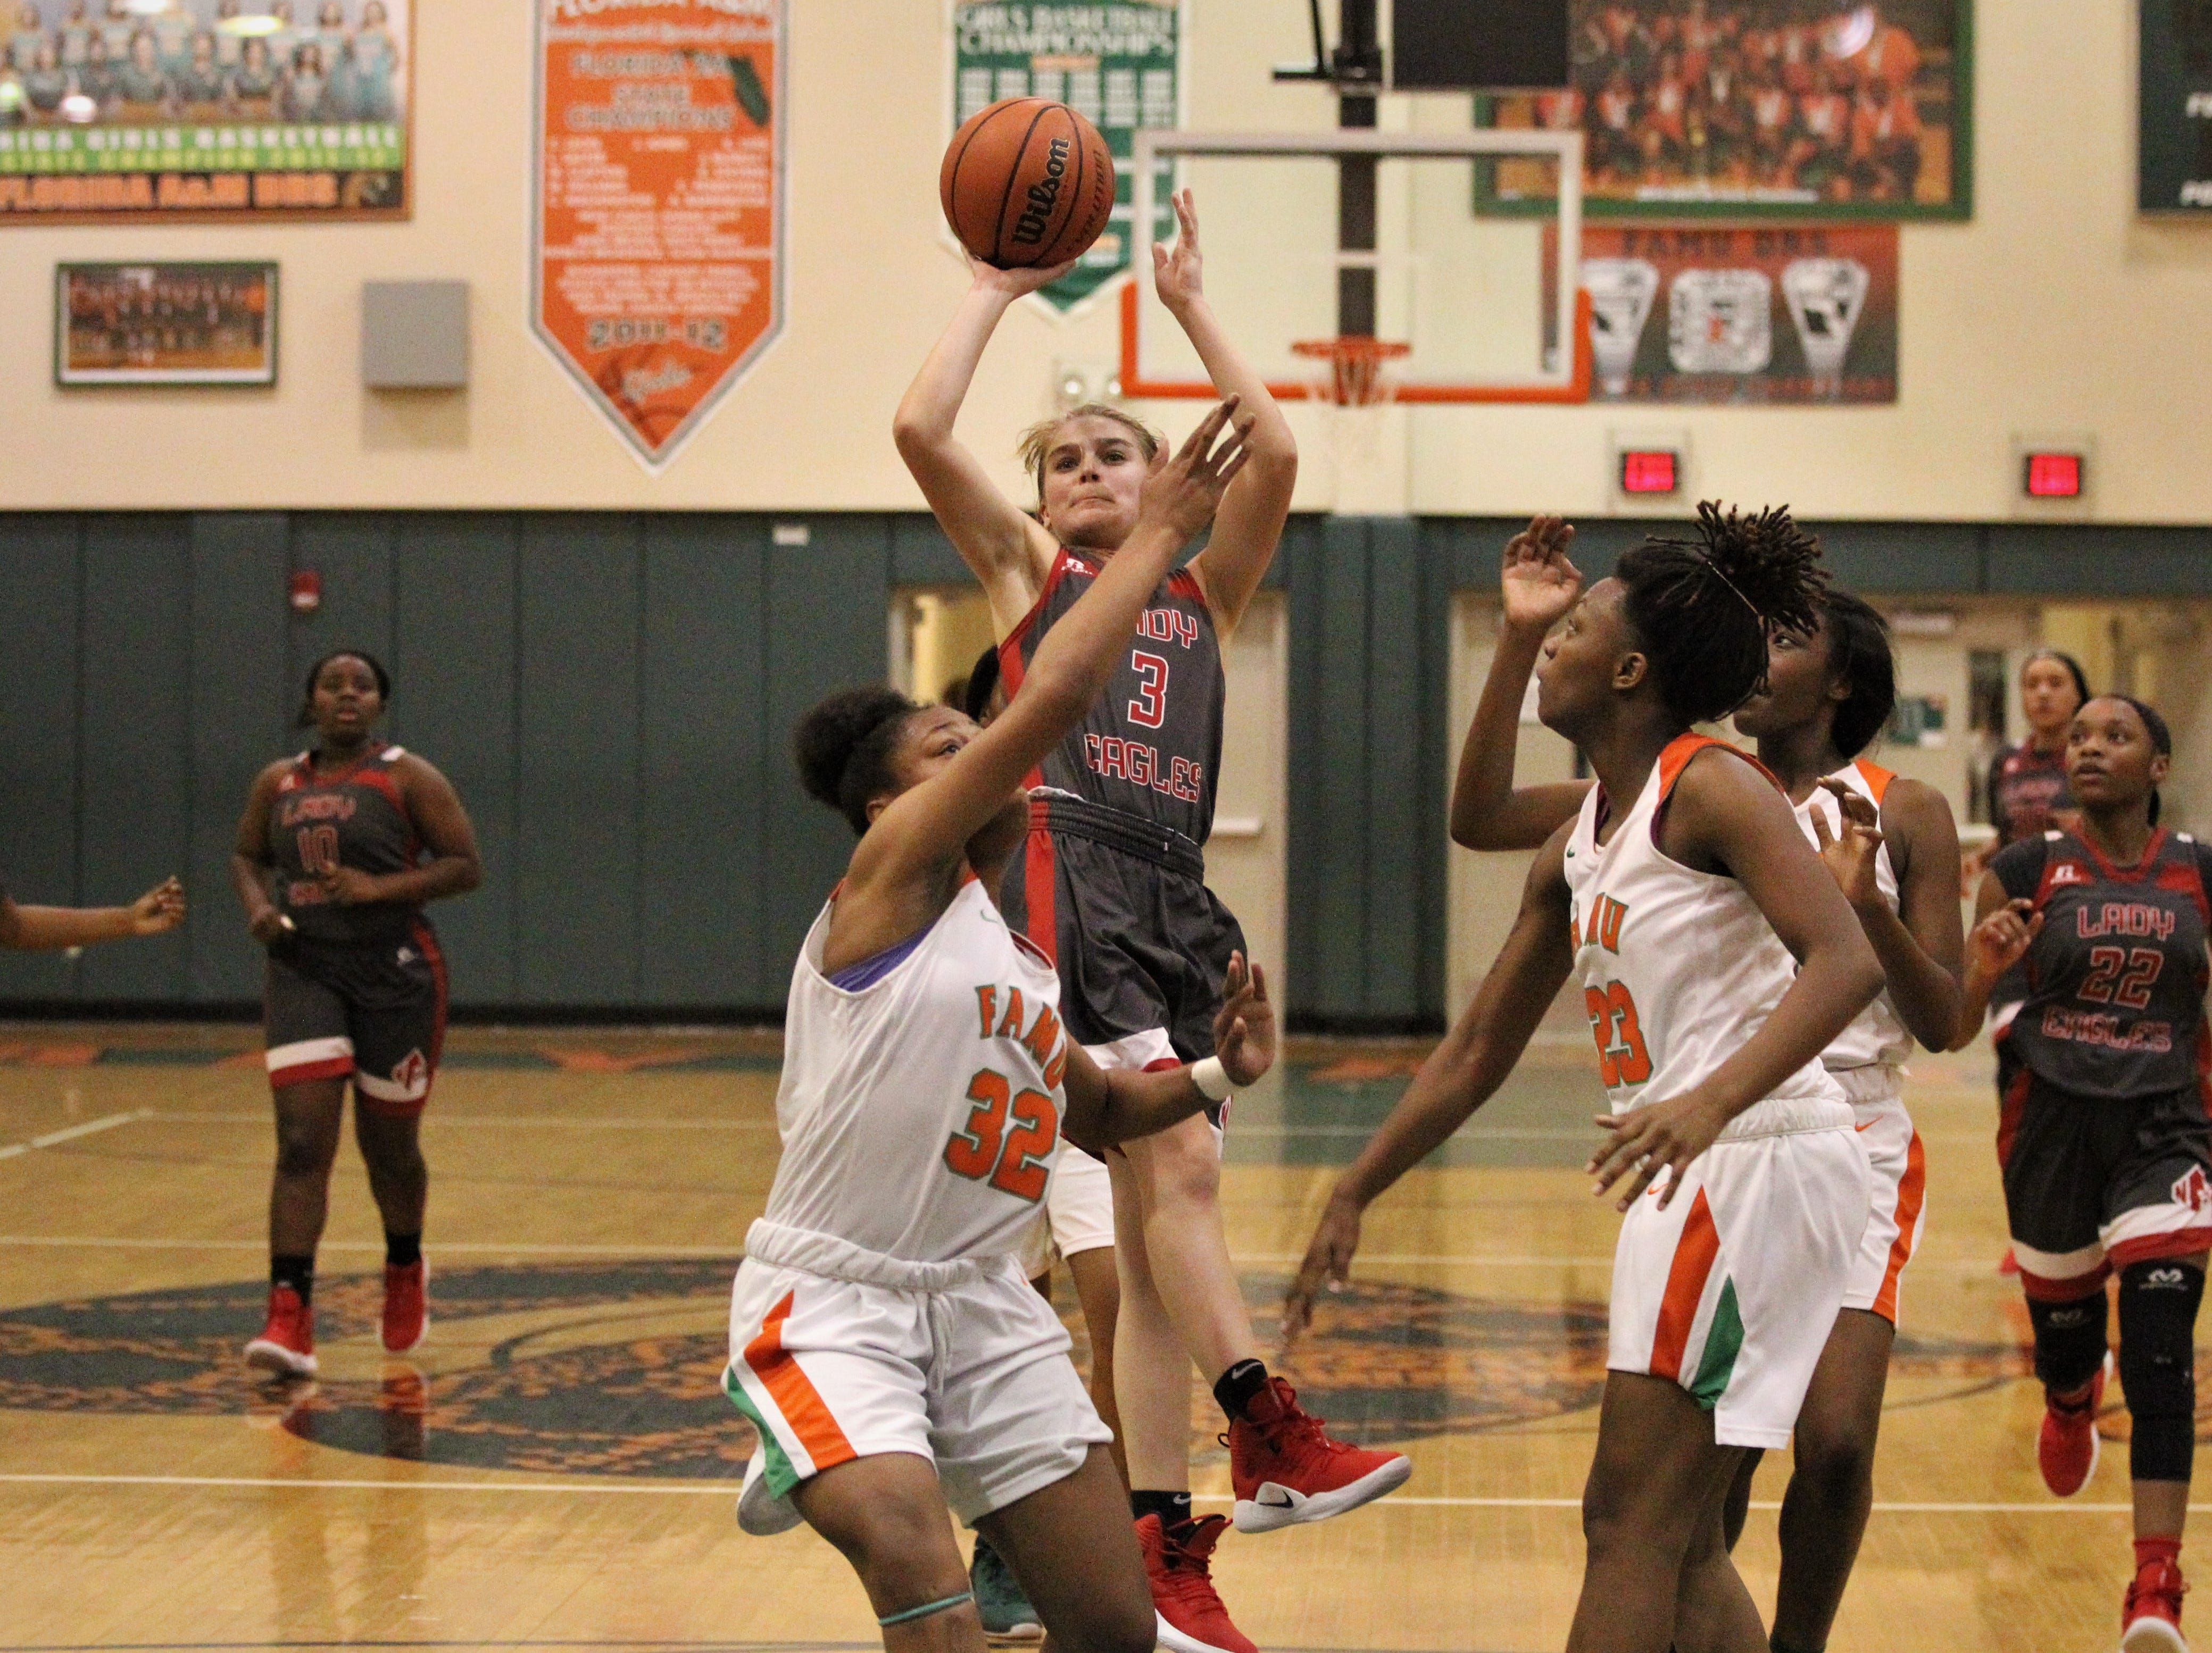 NFC freshman Emma Brice hangs in the air for a jumper as FAMU DRS' girls basketball team beat NFC 59-41 for a District 1-3A title on Jan. 7, 2019.